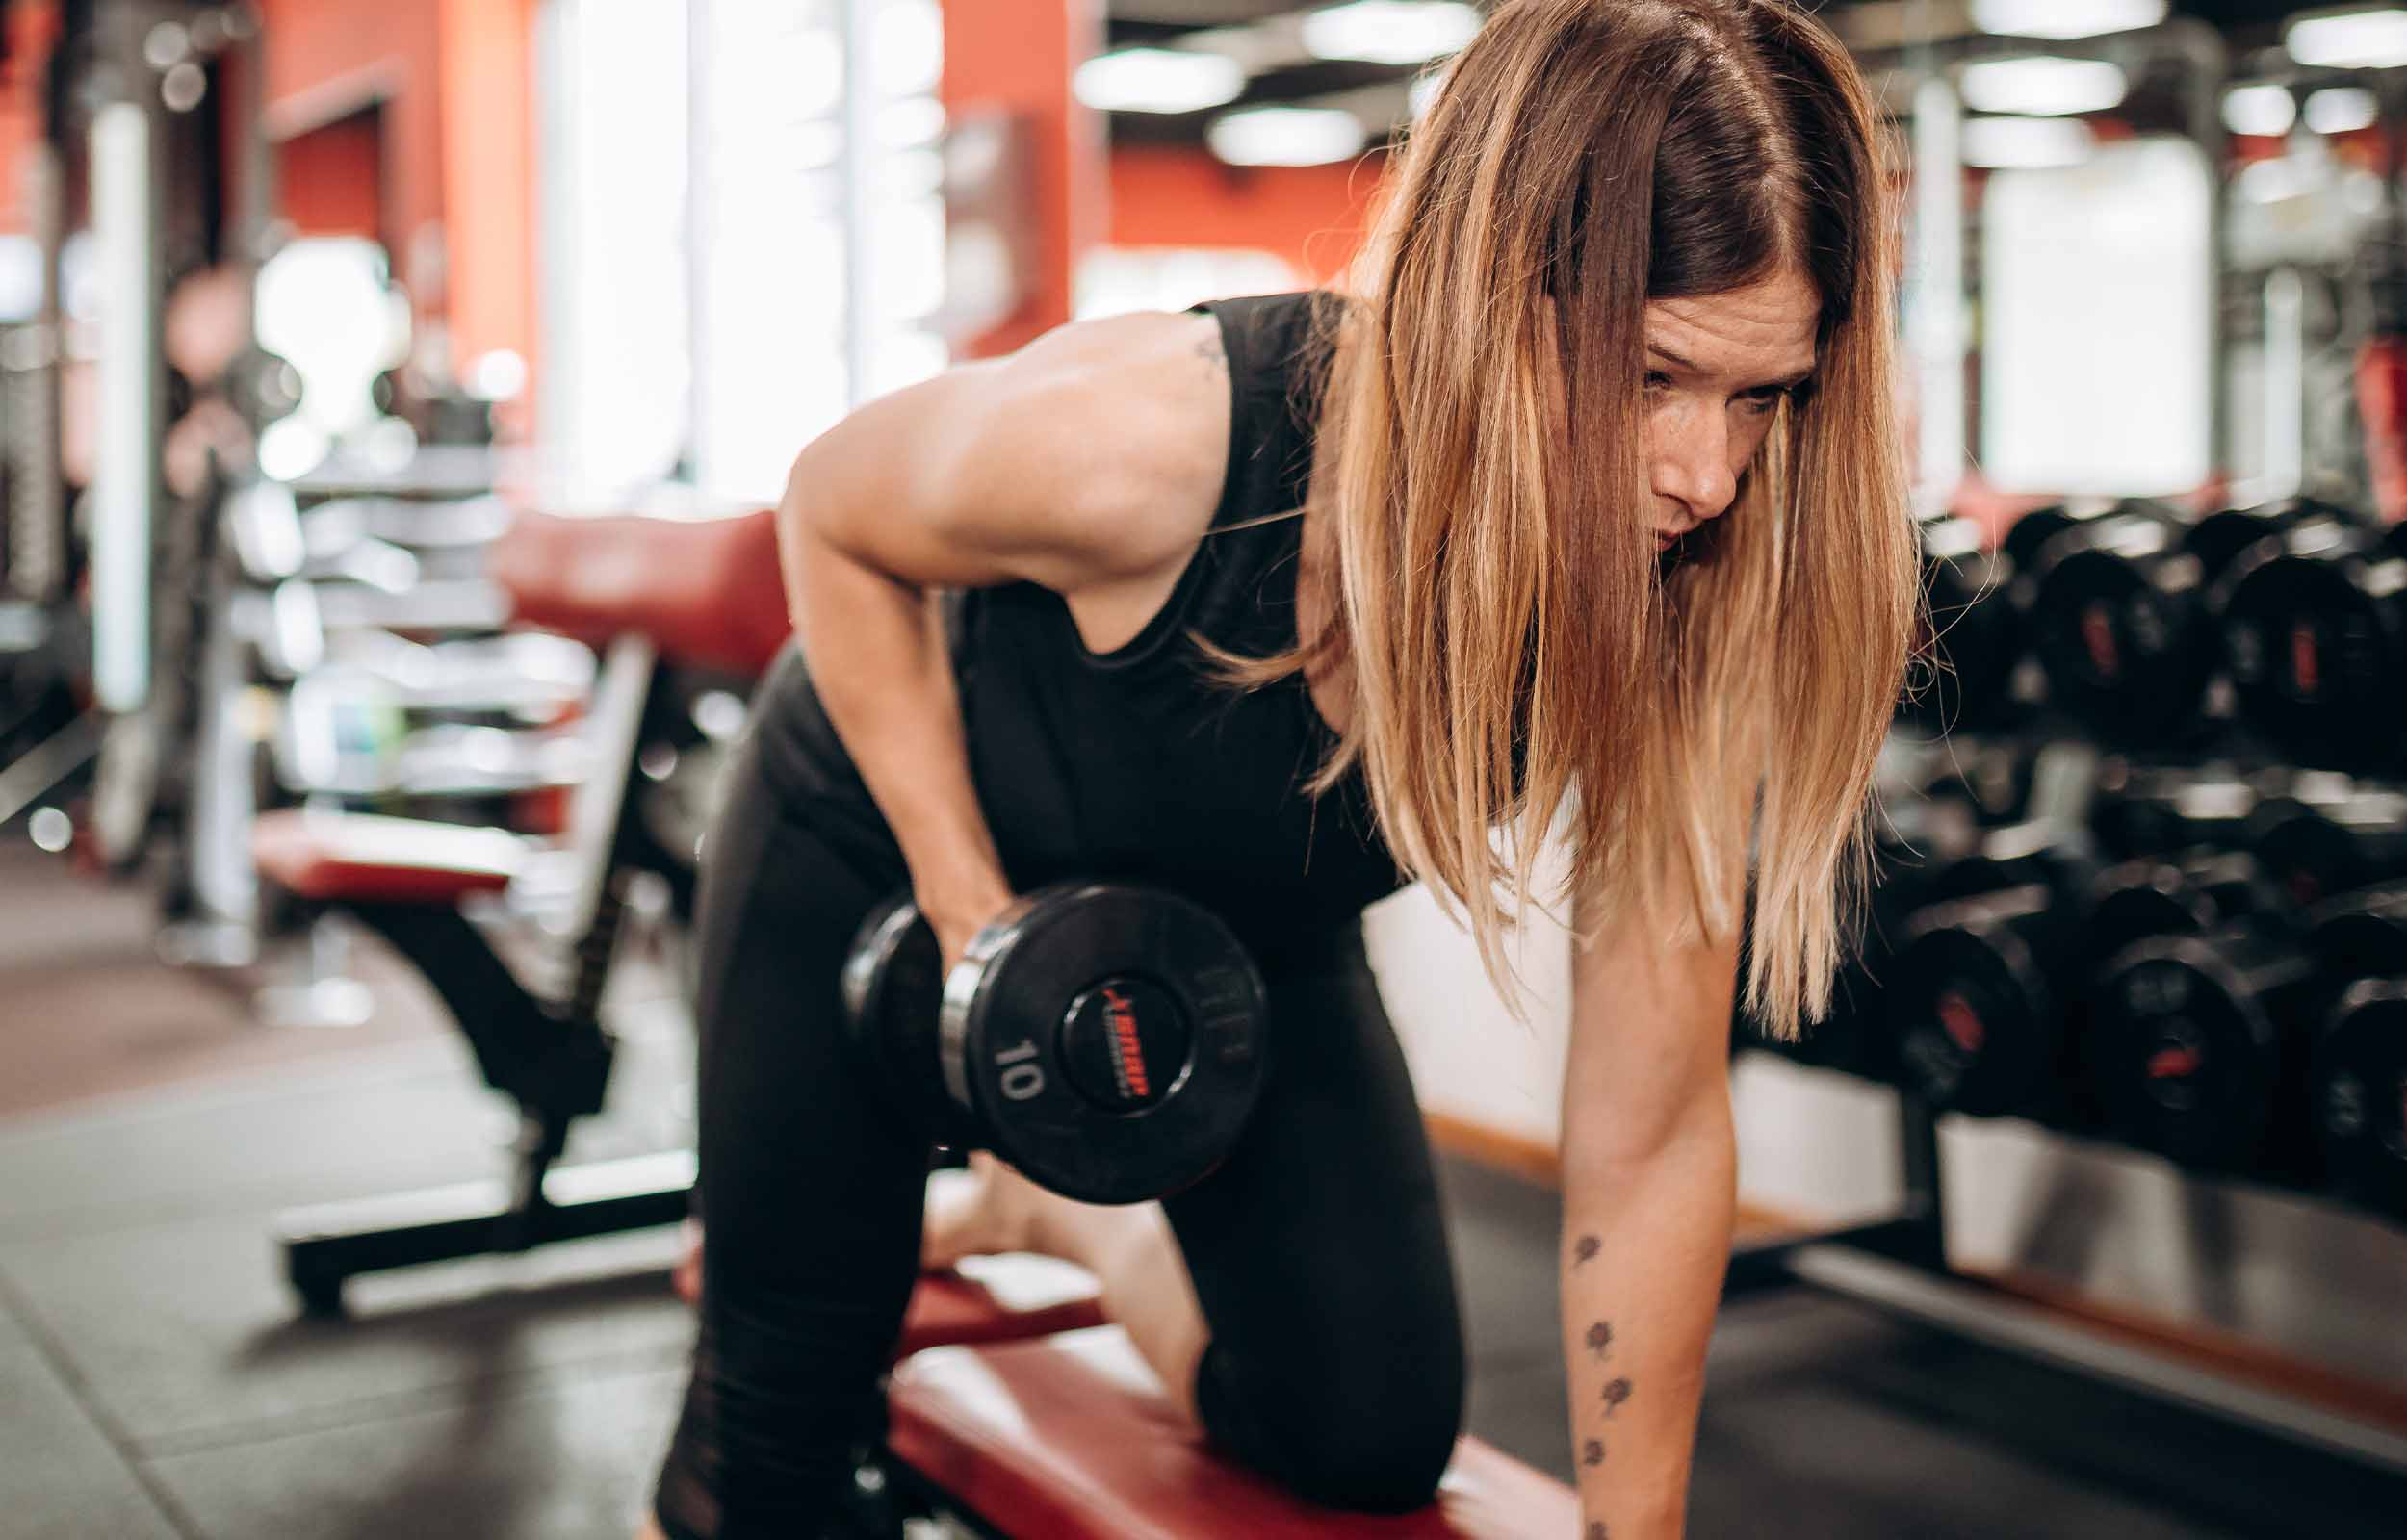 Does strength training make you bulky?